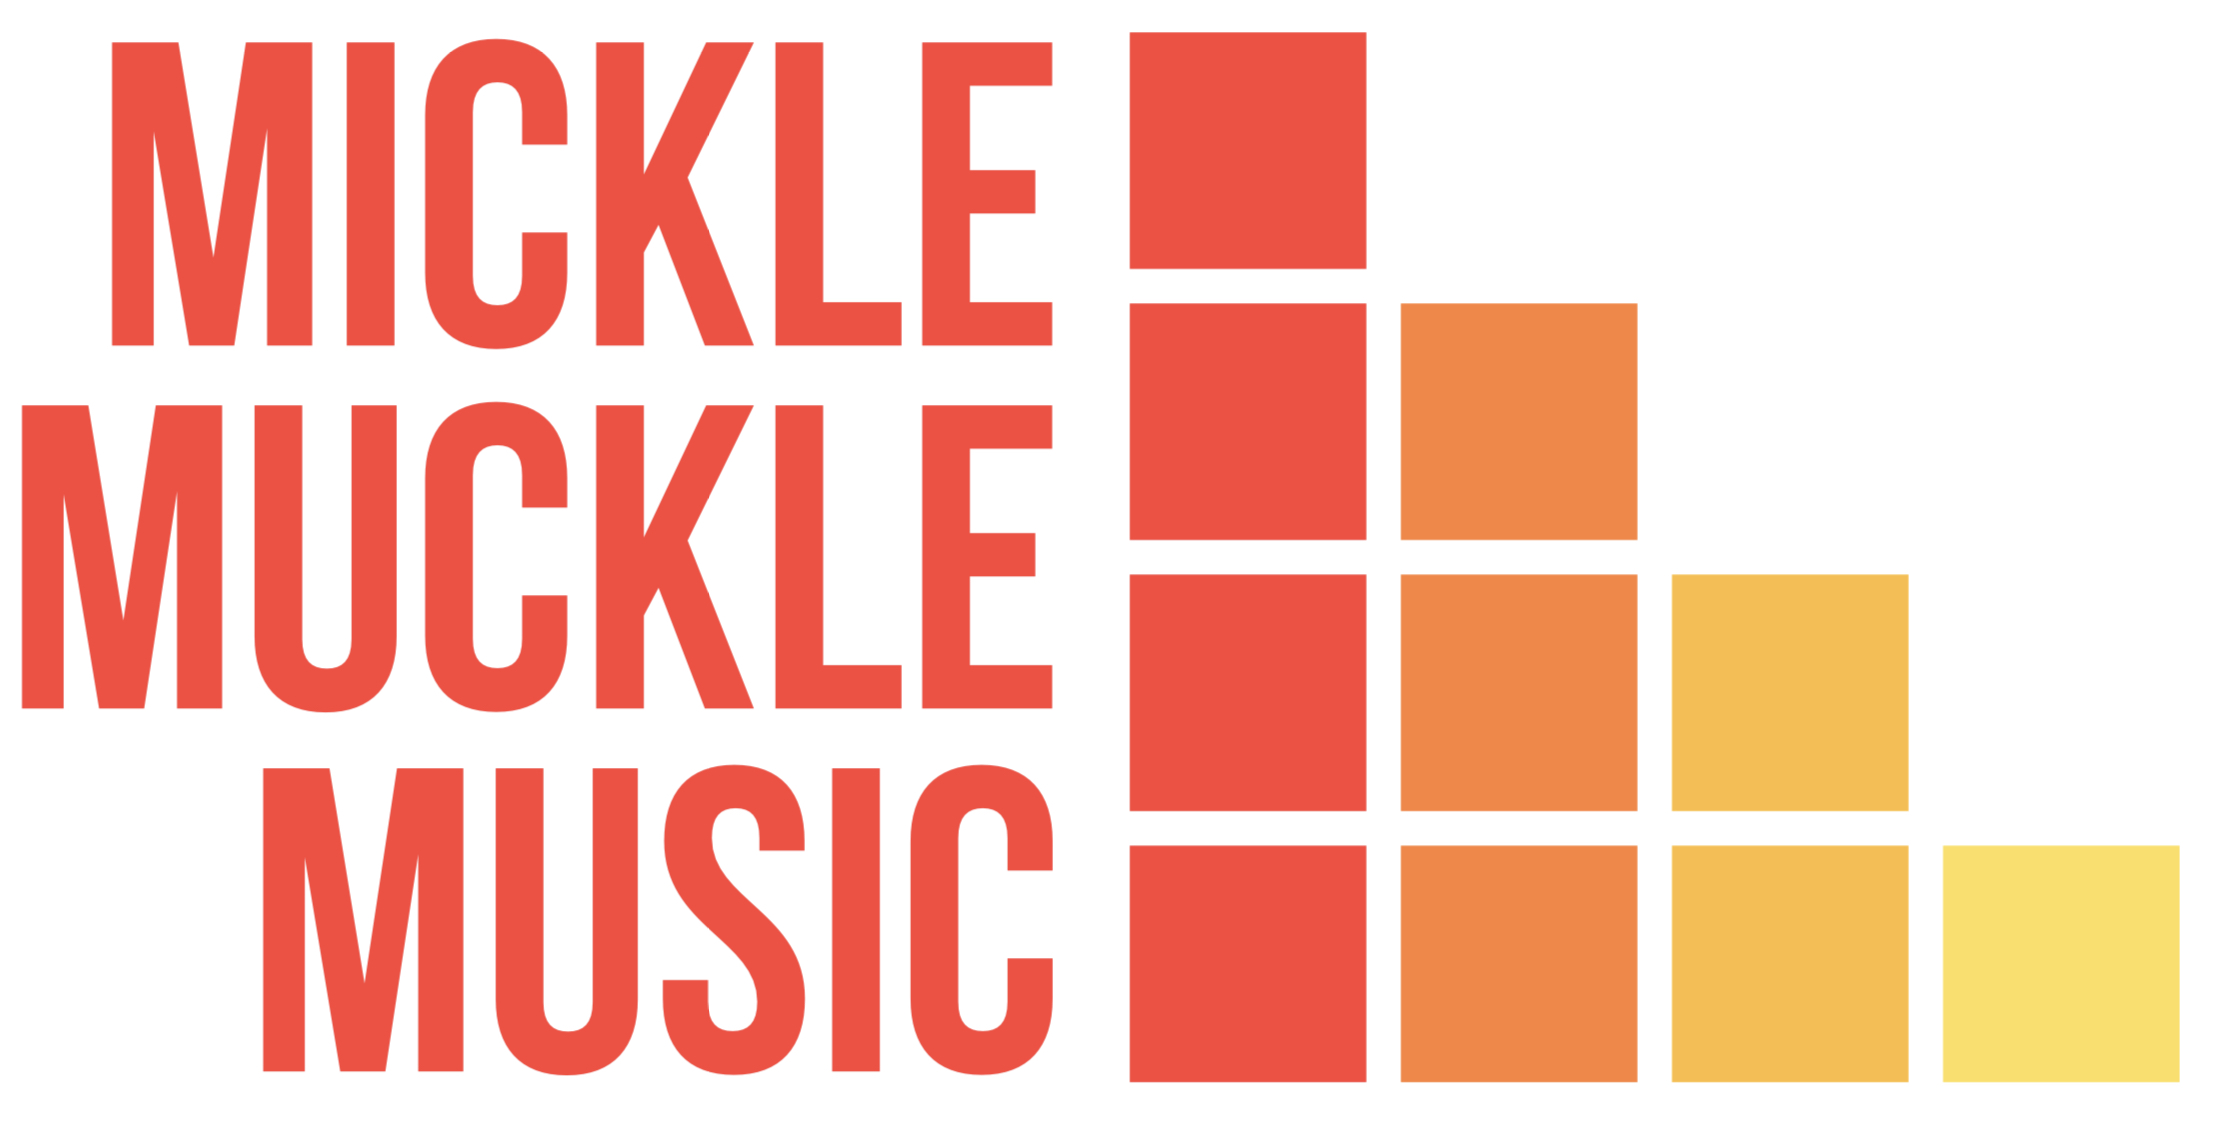 Mickle Muckle Music